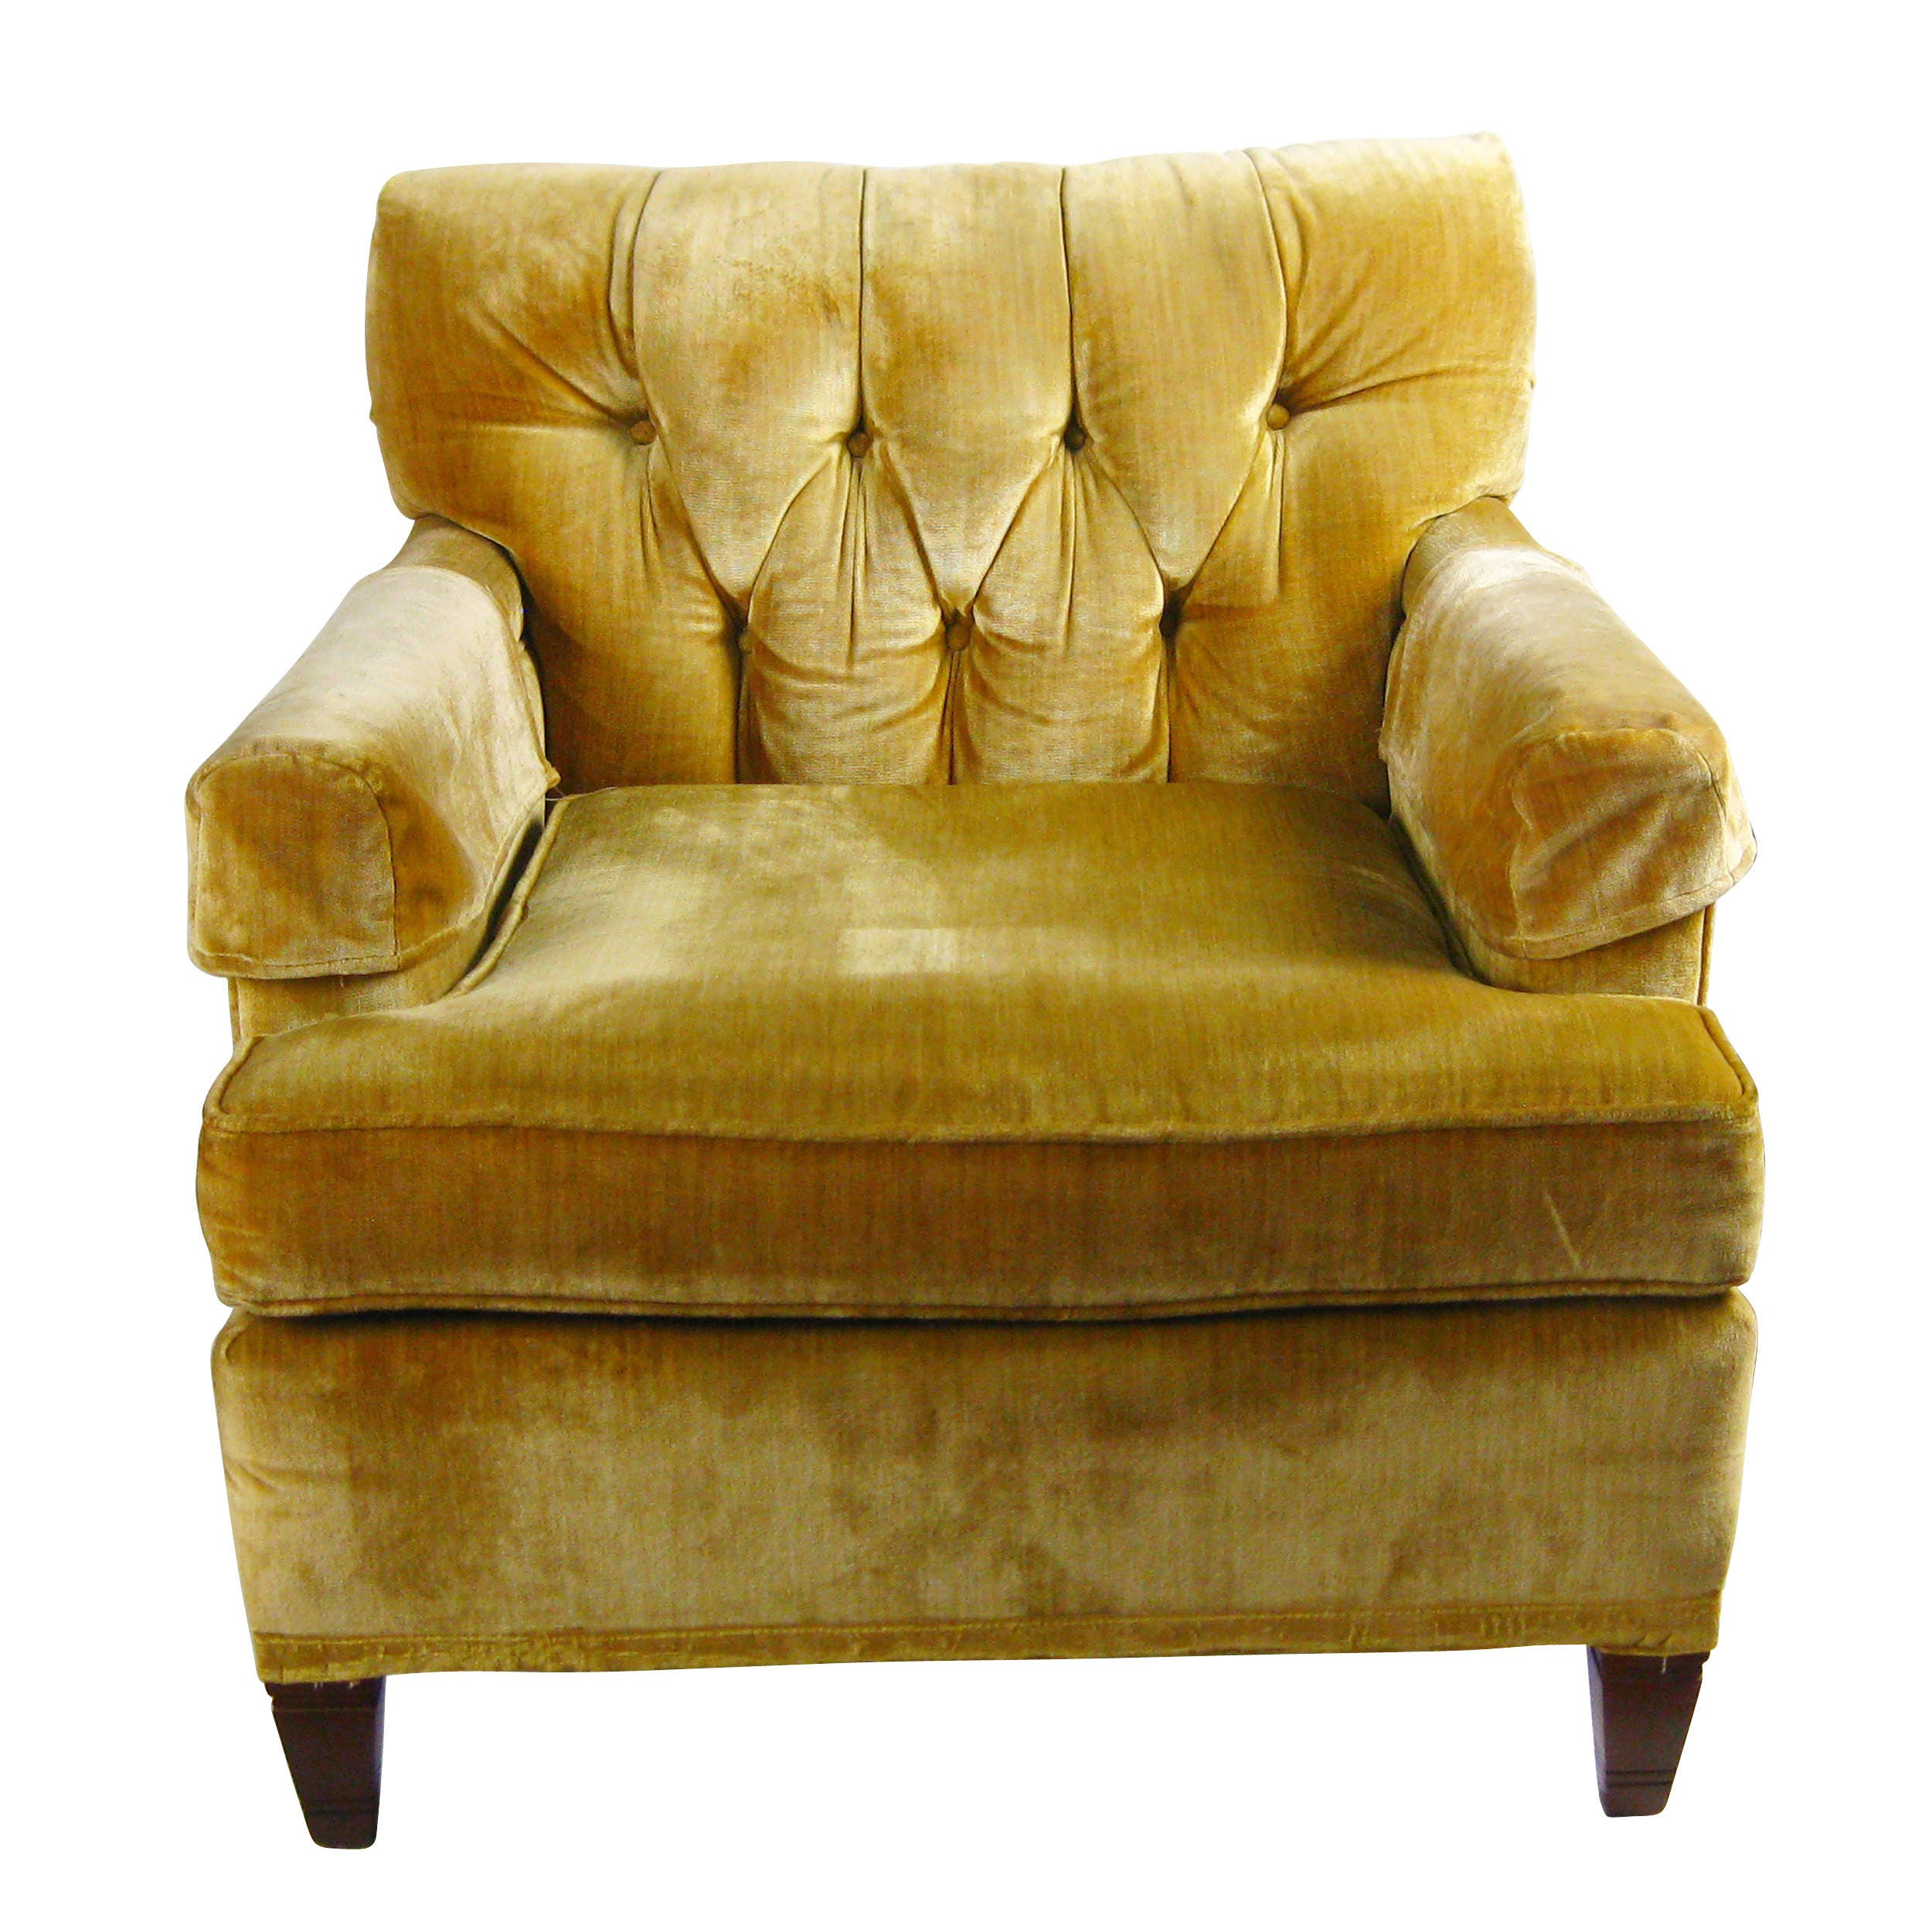 Furniture Corp: Vintage North Hickory Furniture Company Yellow Gold Tufted